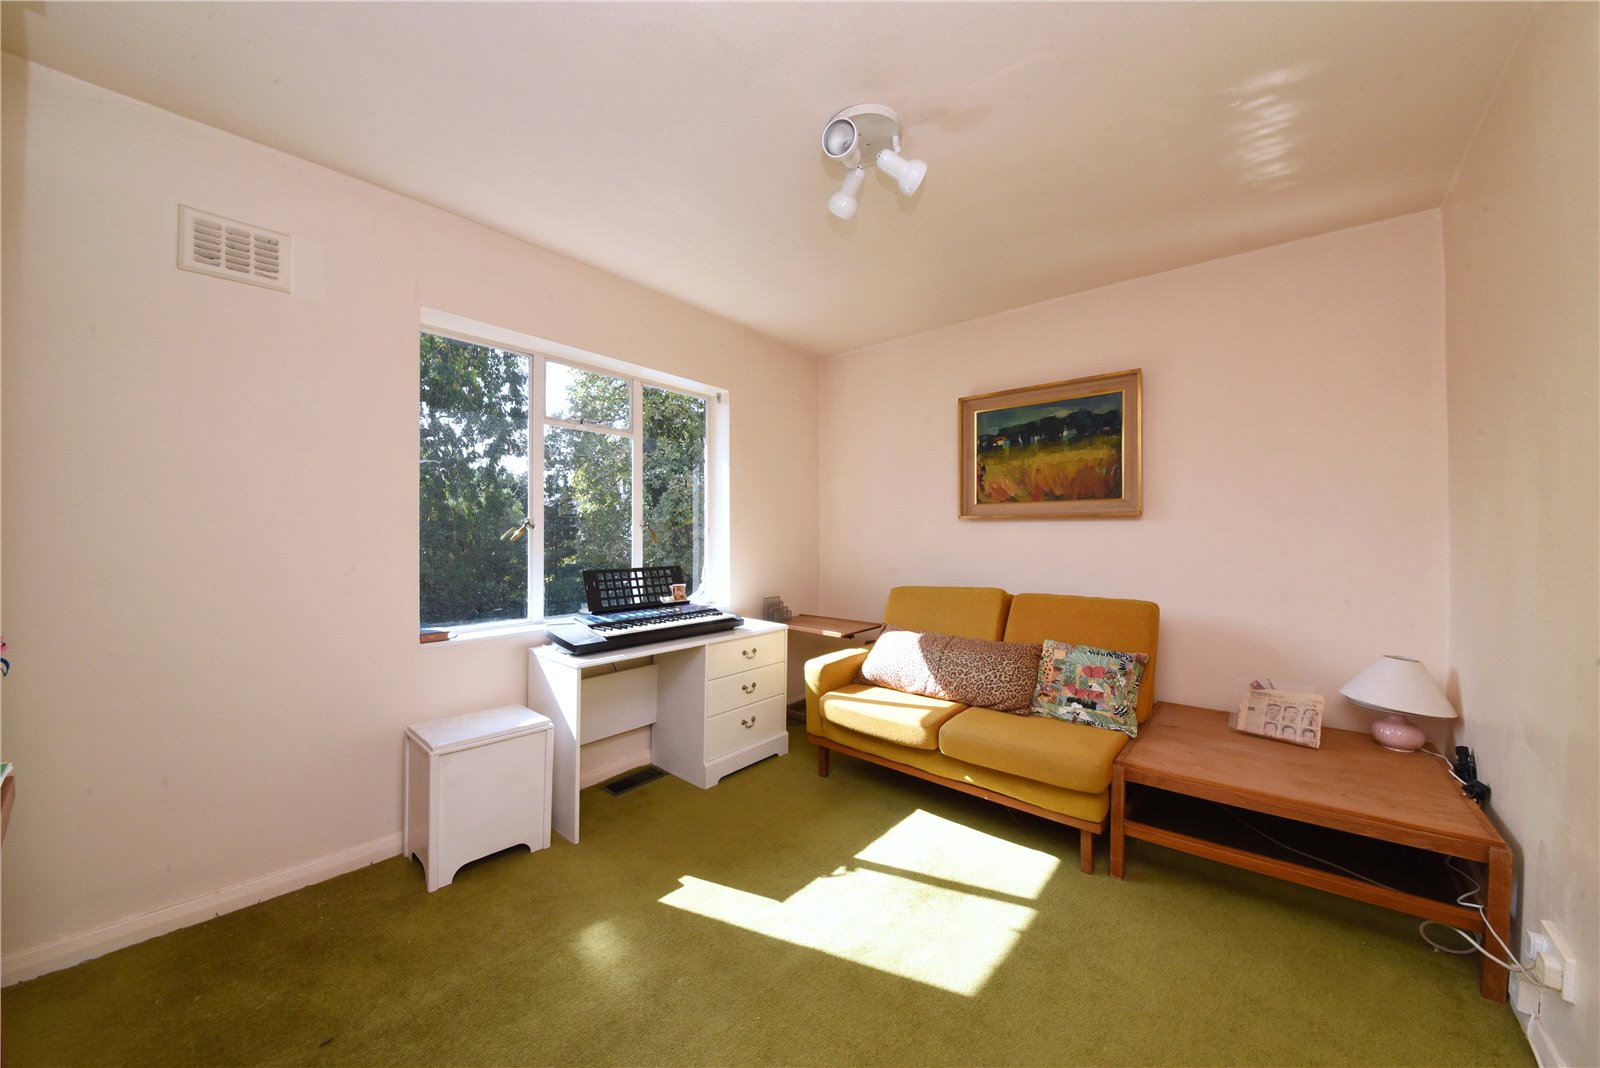 3 bed house for sale in West Finchley, N3 1PB 7